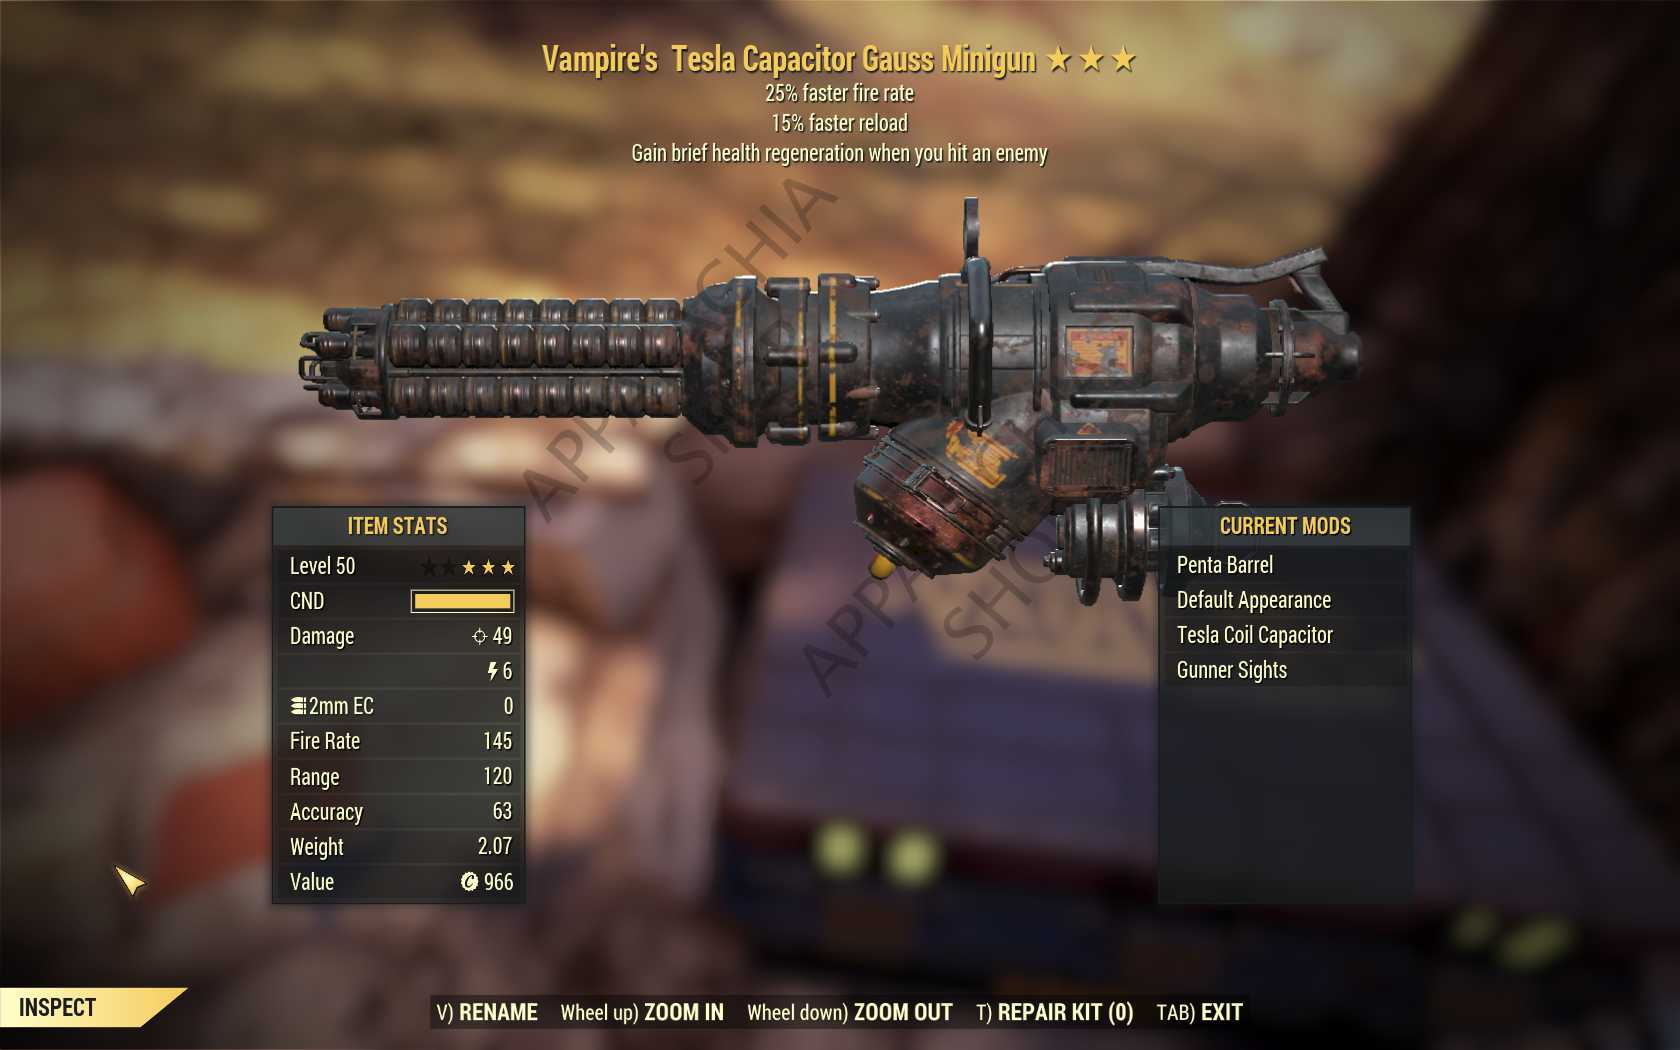 Vampire's Gauss Minigun (25% faster fire rate, 15% faster reload) FULL MODDED [Wastelanders]